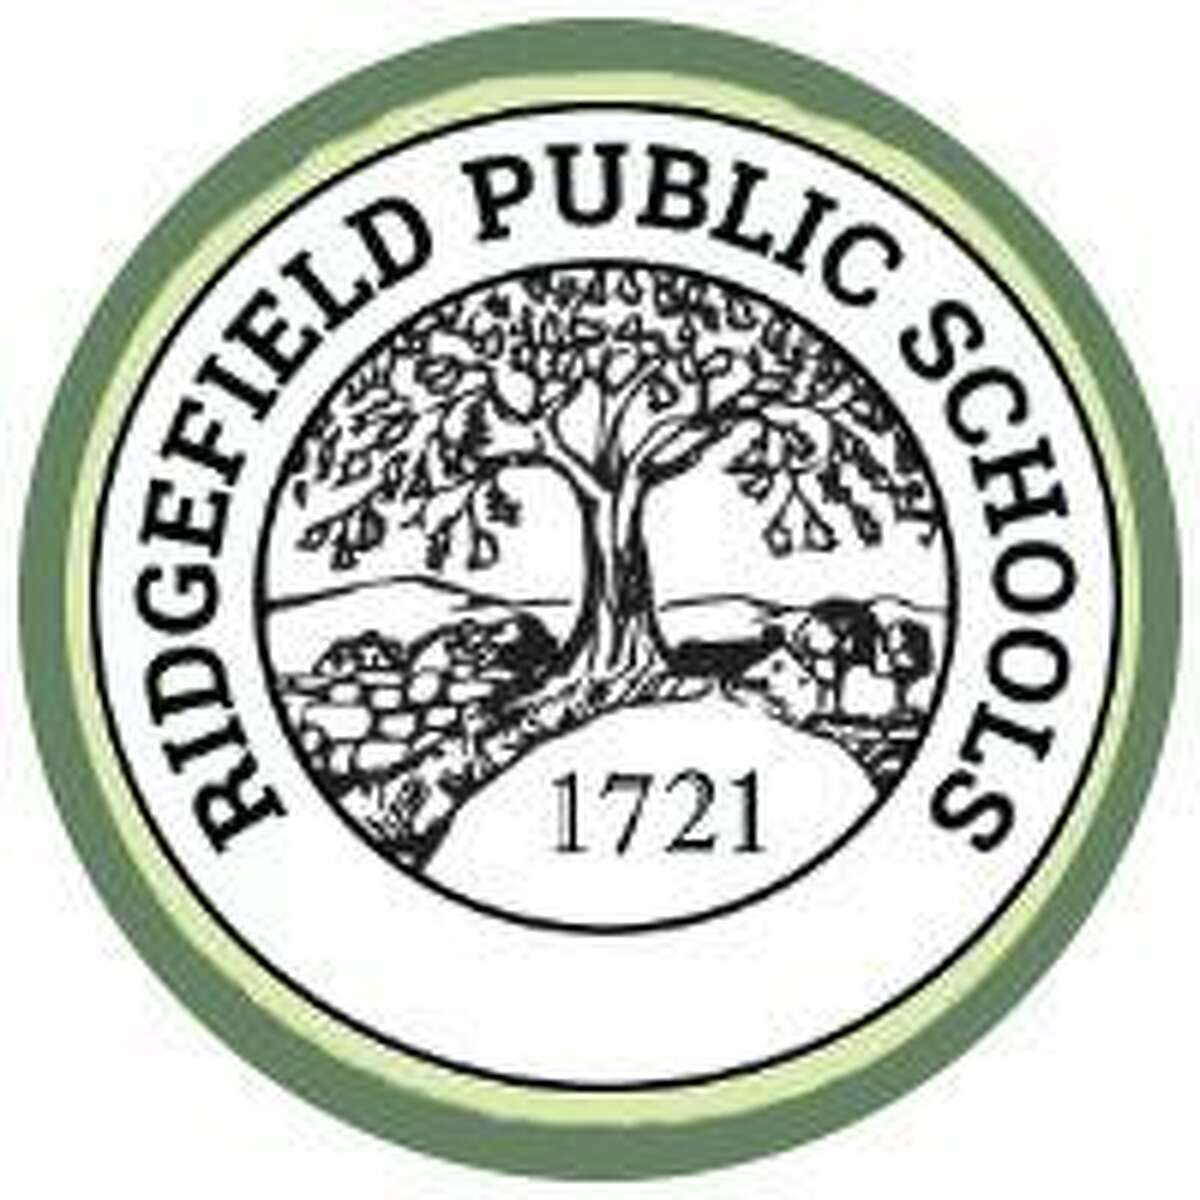 The Ridgefield Board of Education is a board of nine volunteers, elected by the registered voters in Ridgefield.